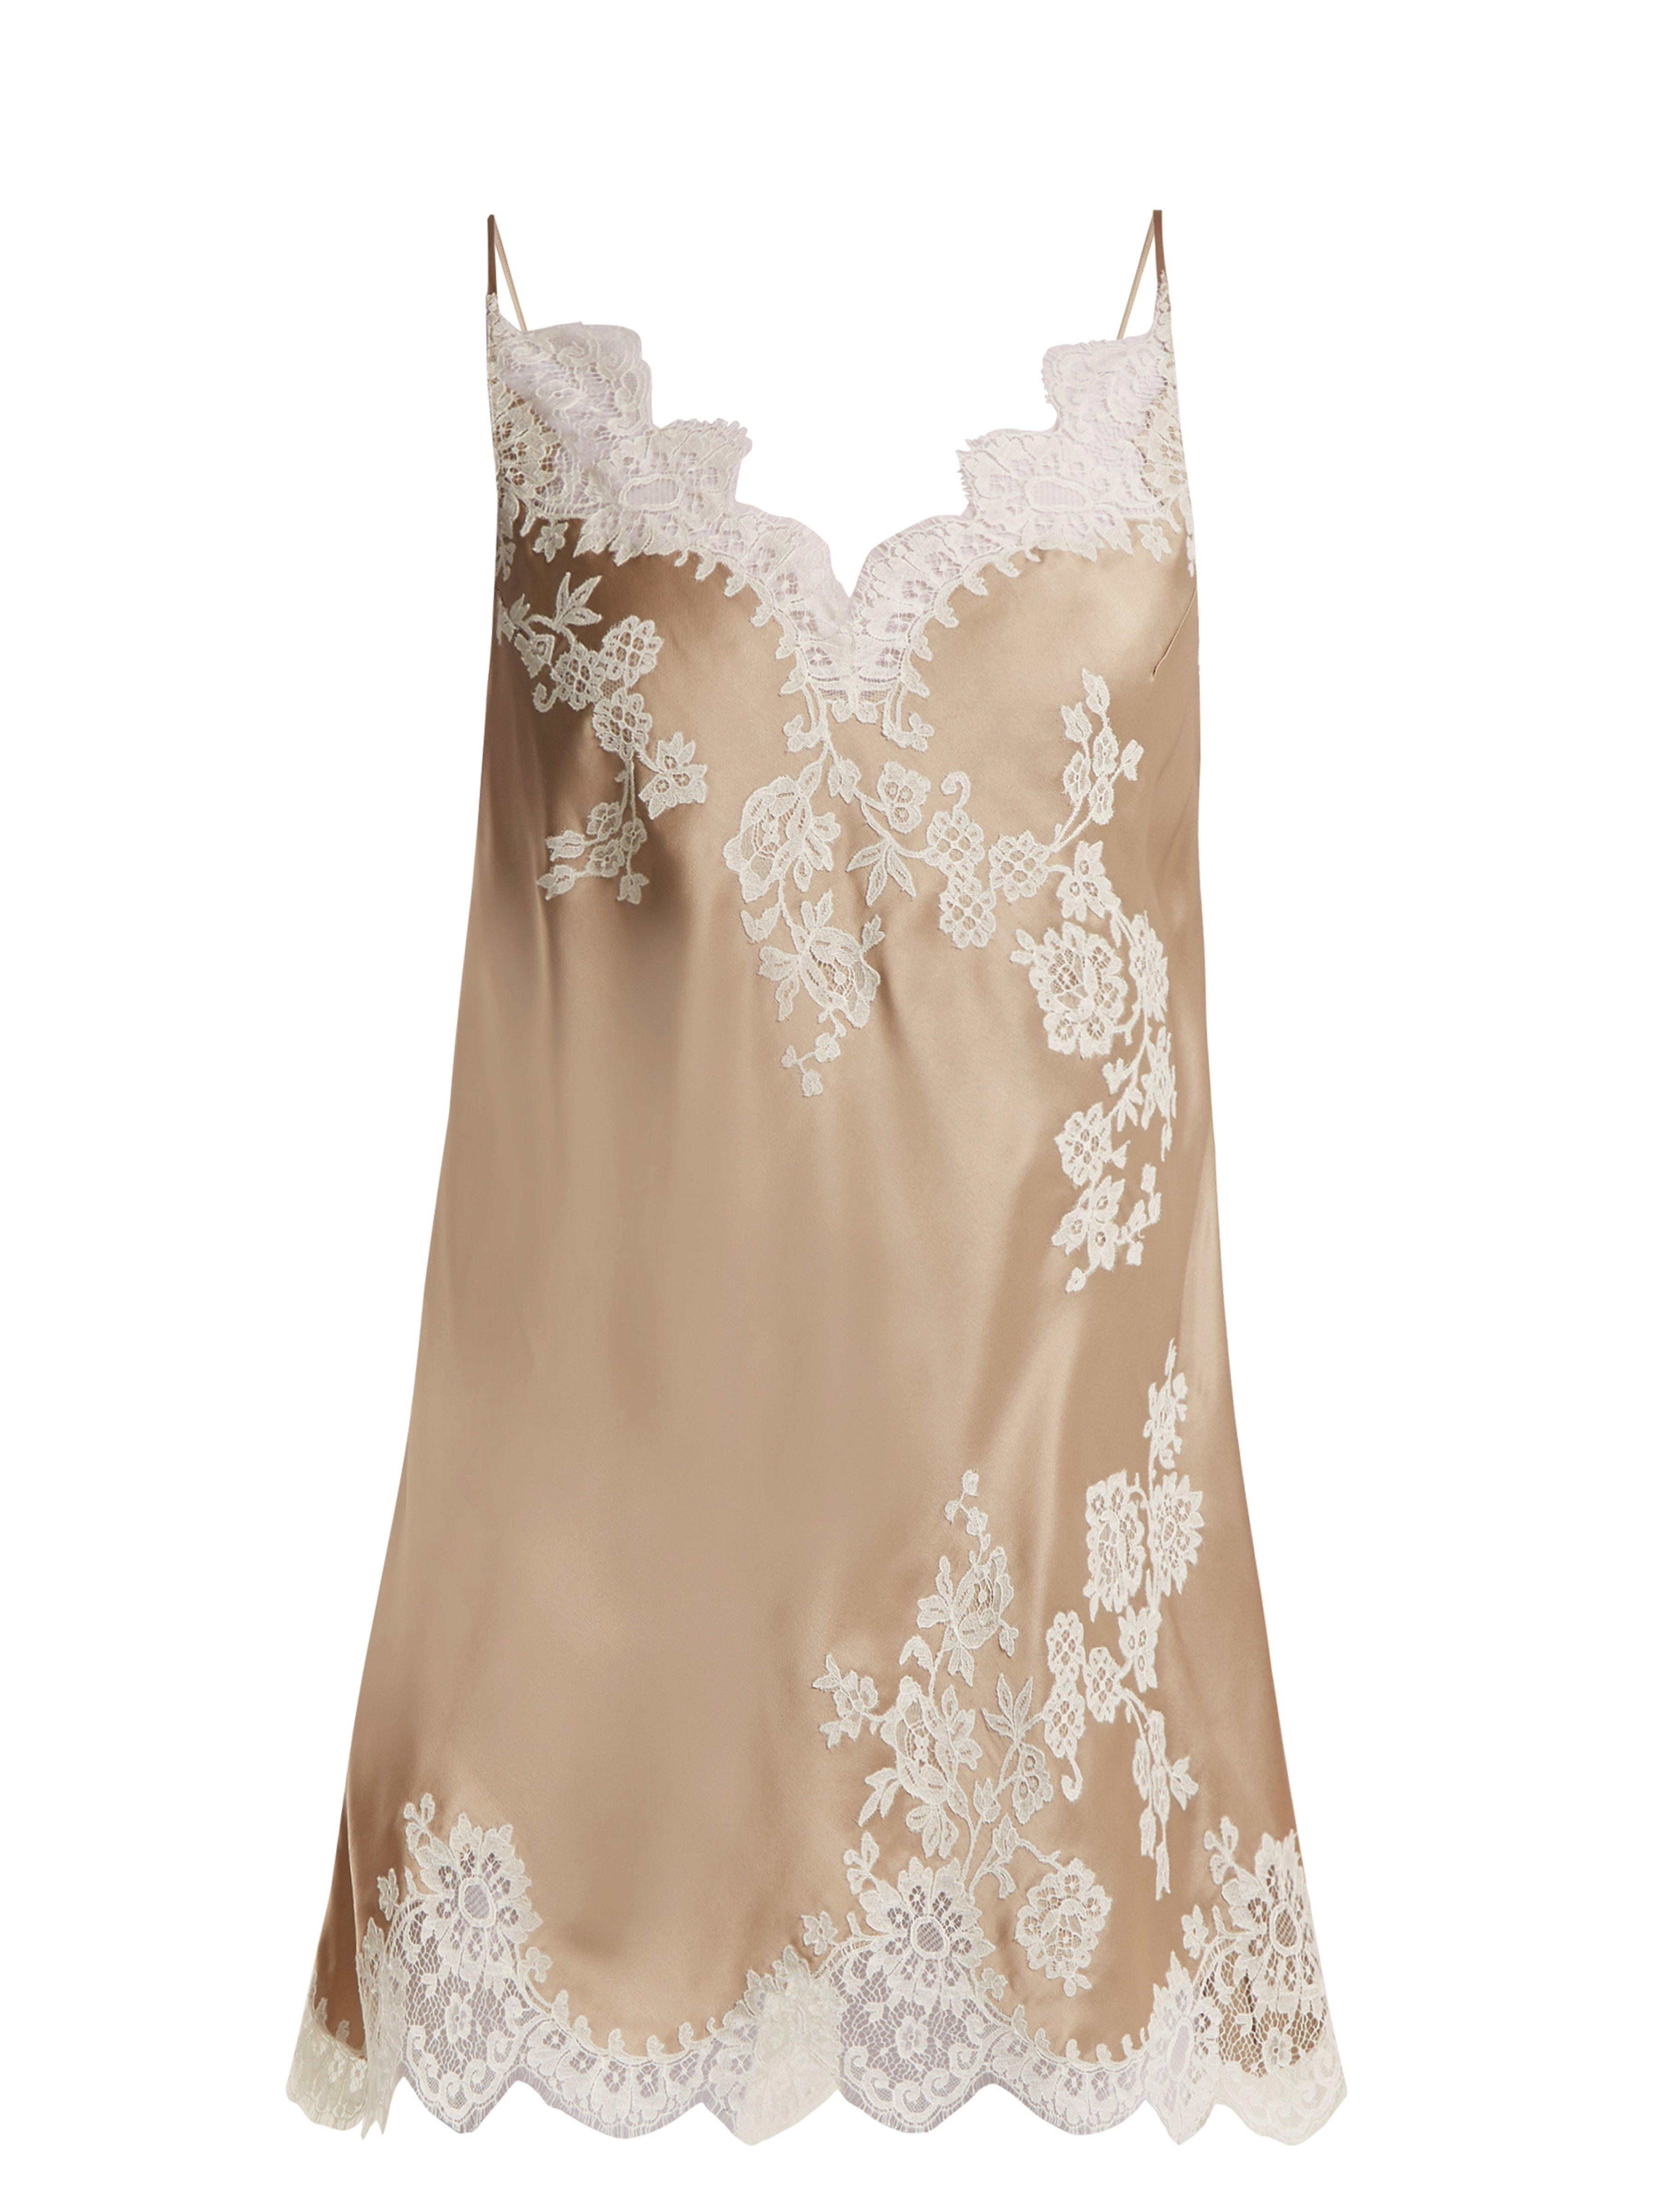 6946a00208ac Carine Gilson Lace Trimmed Silk Satin Cami Dress in Natural - Lyst